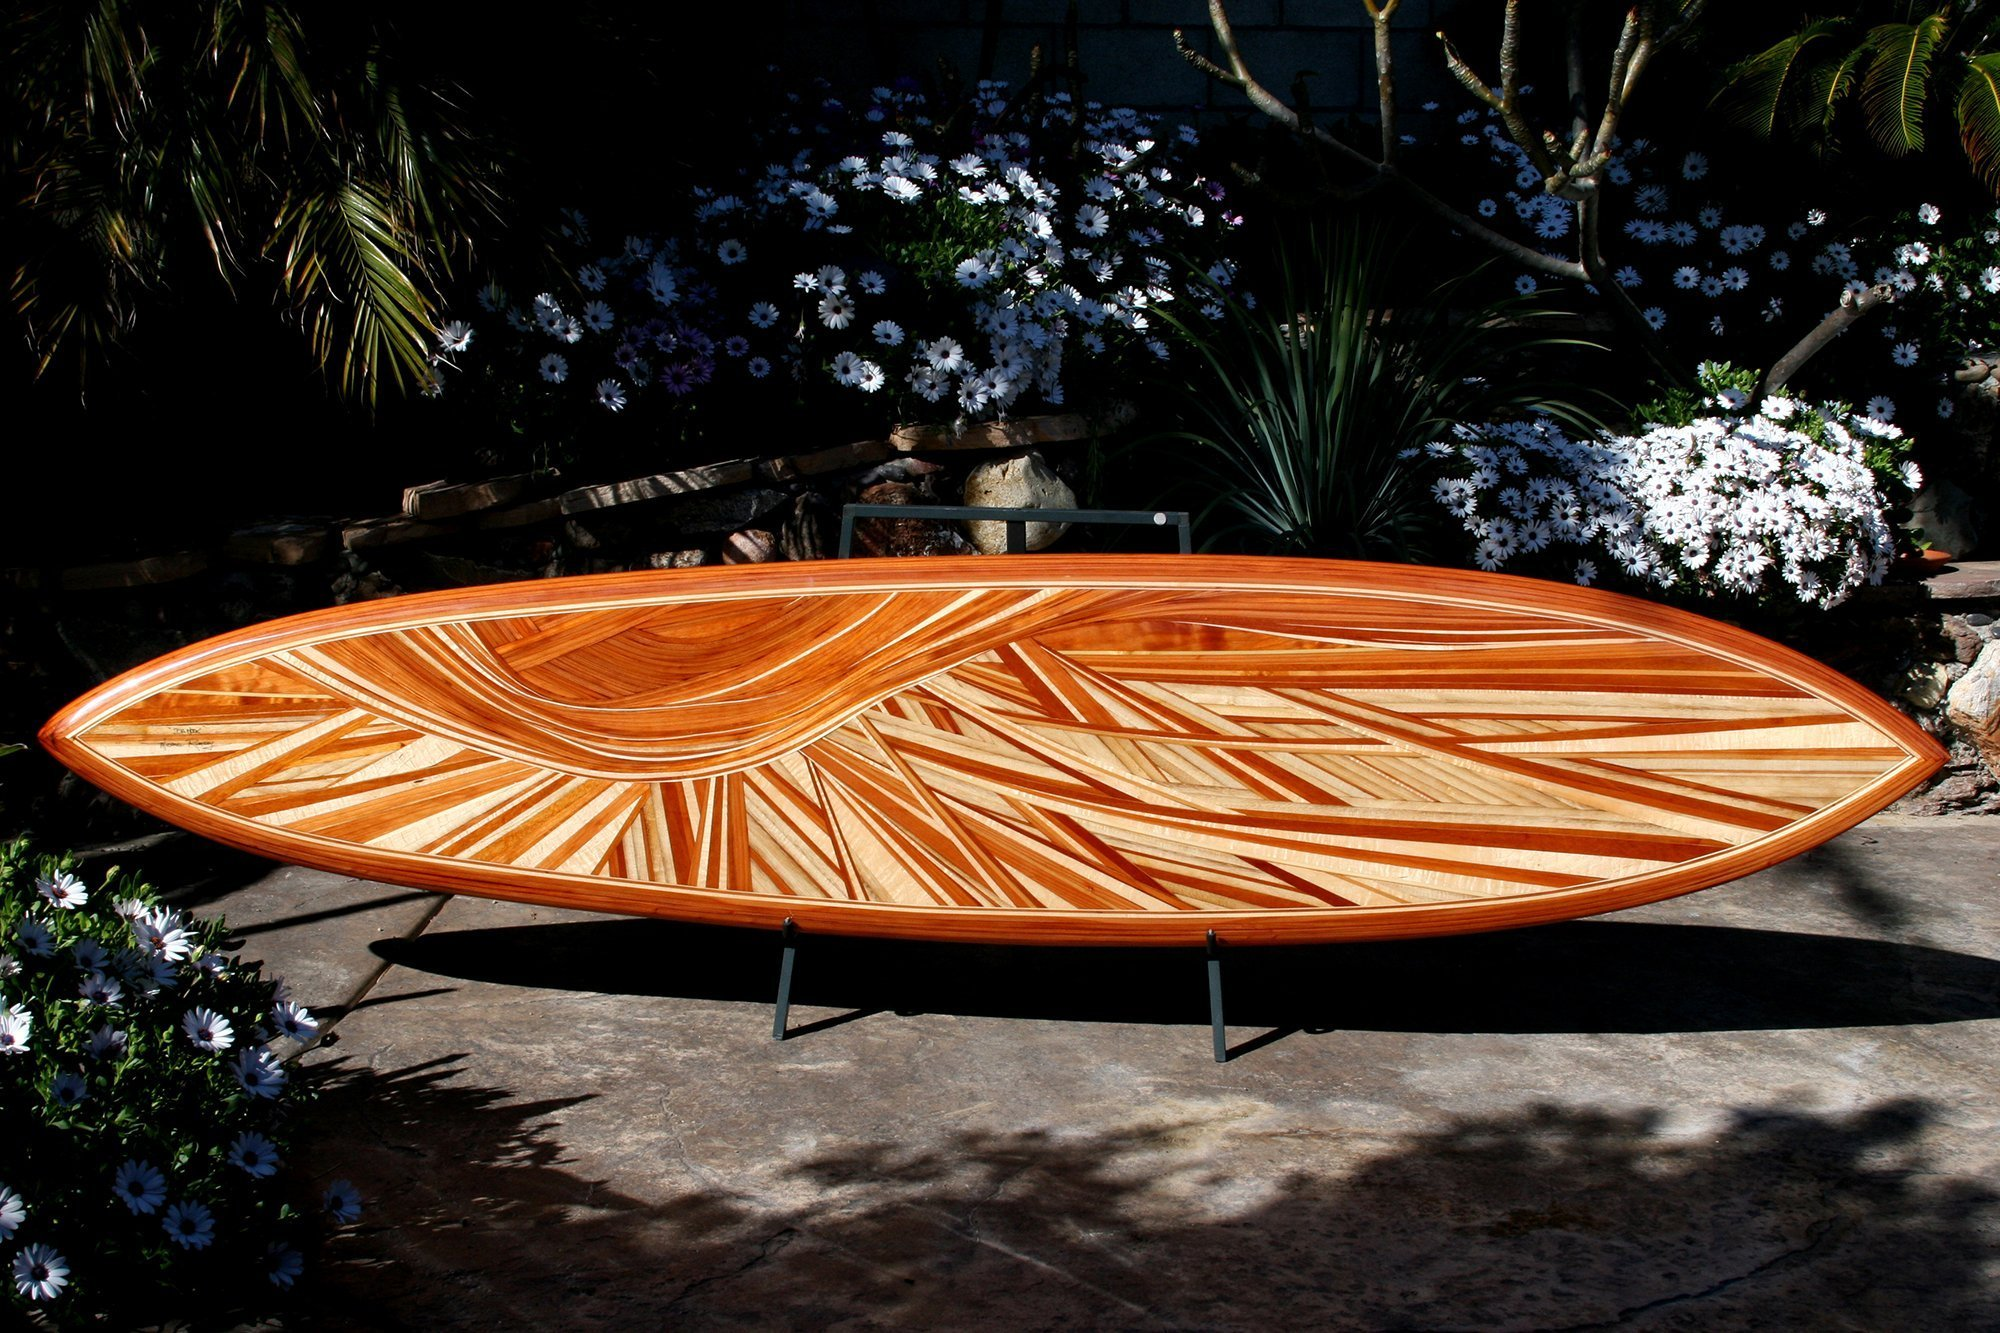 decorative surfboard titled da hook built by mike rumsey who used a variety of lumber species void of paint or stain